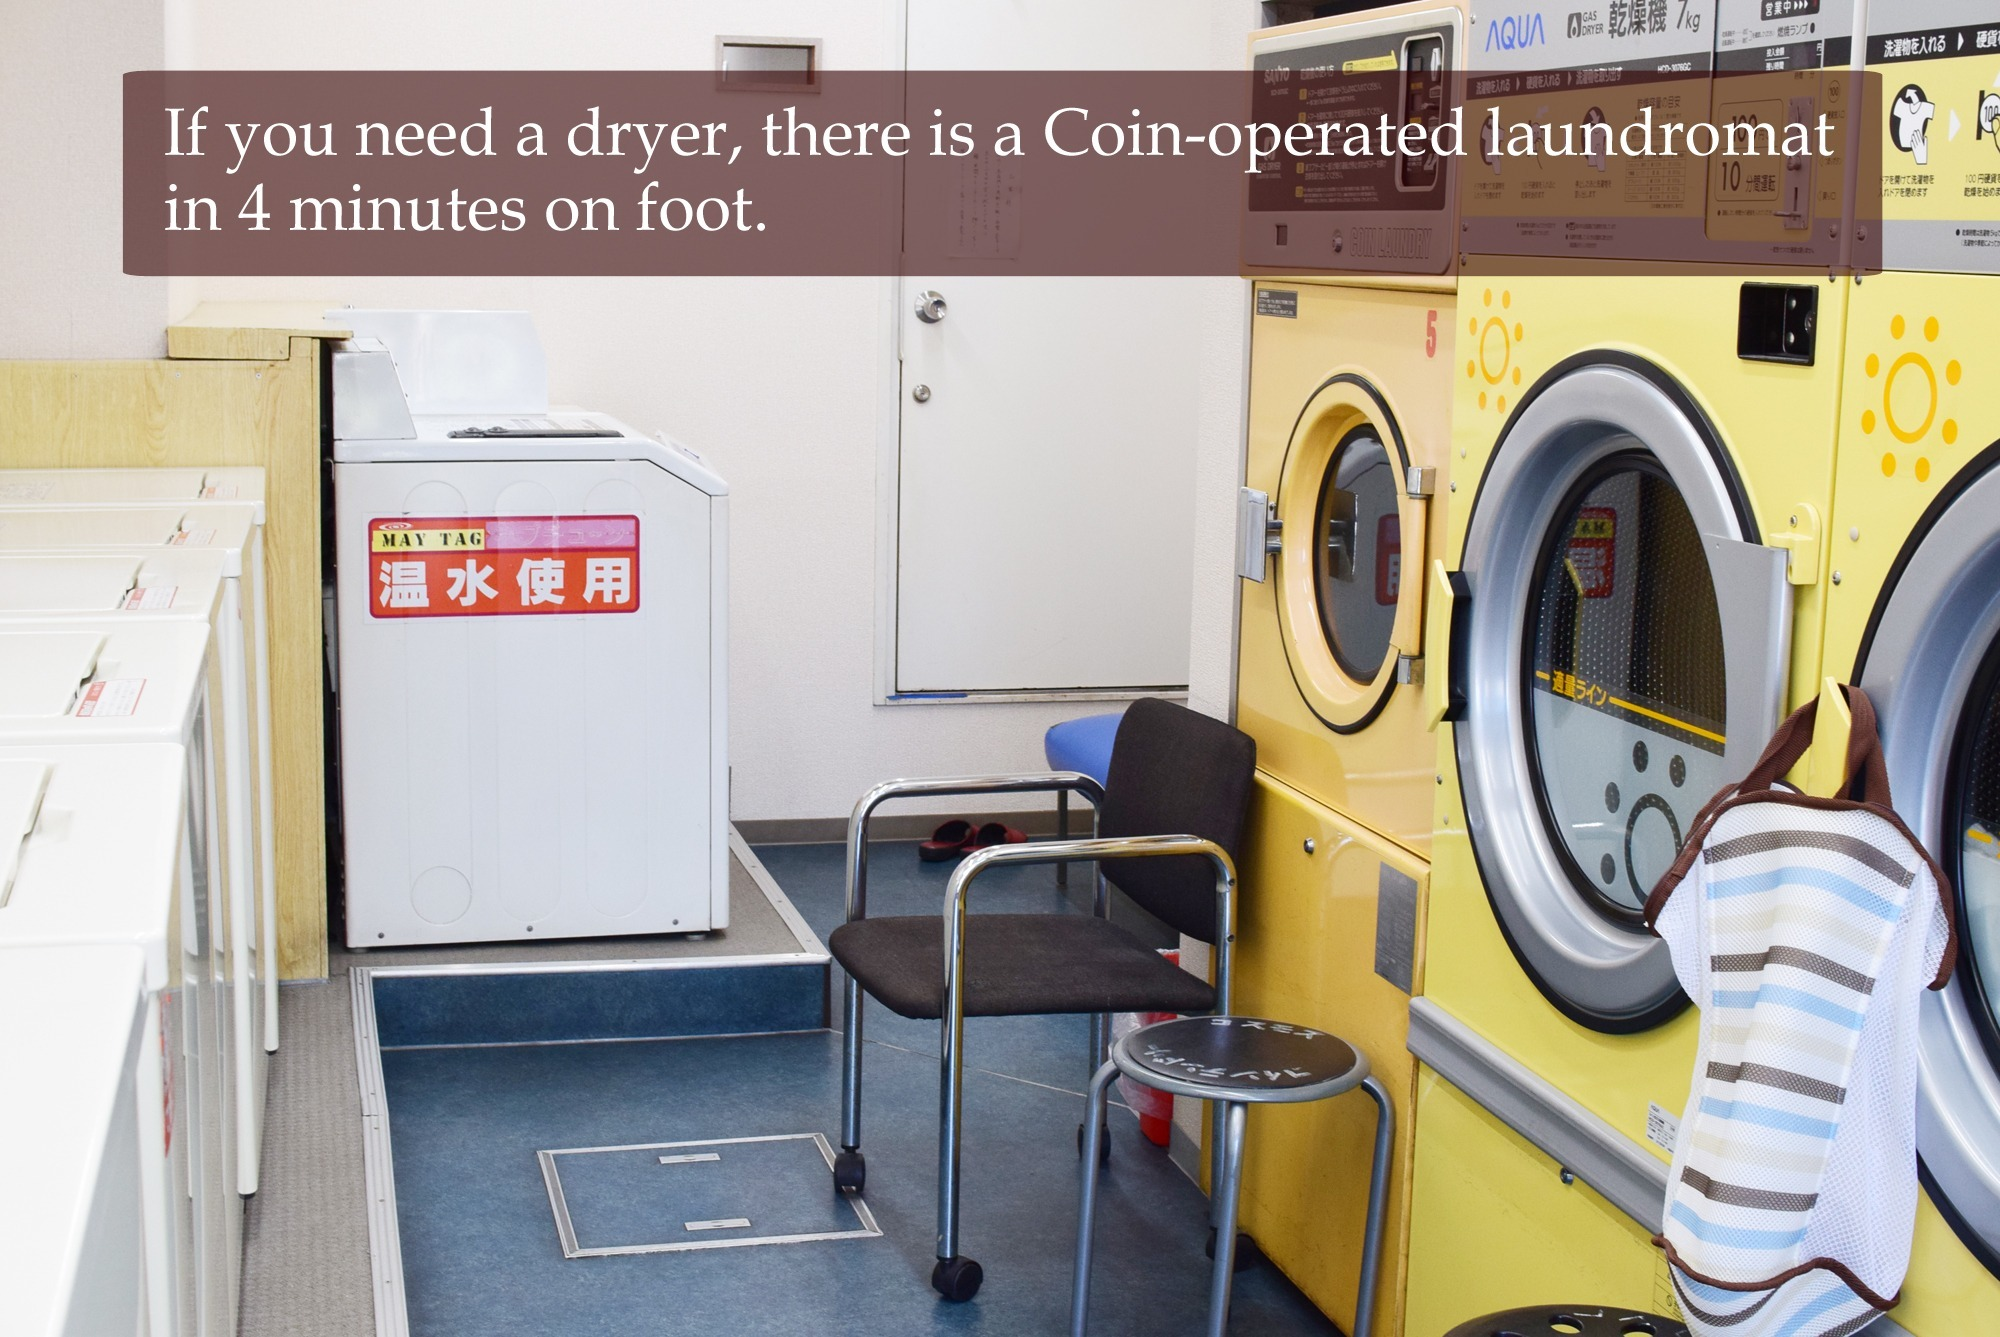 If you need a dryer, there is a Coin-operated laundromat in 4 minutes on foot.